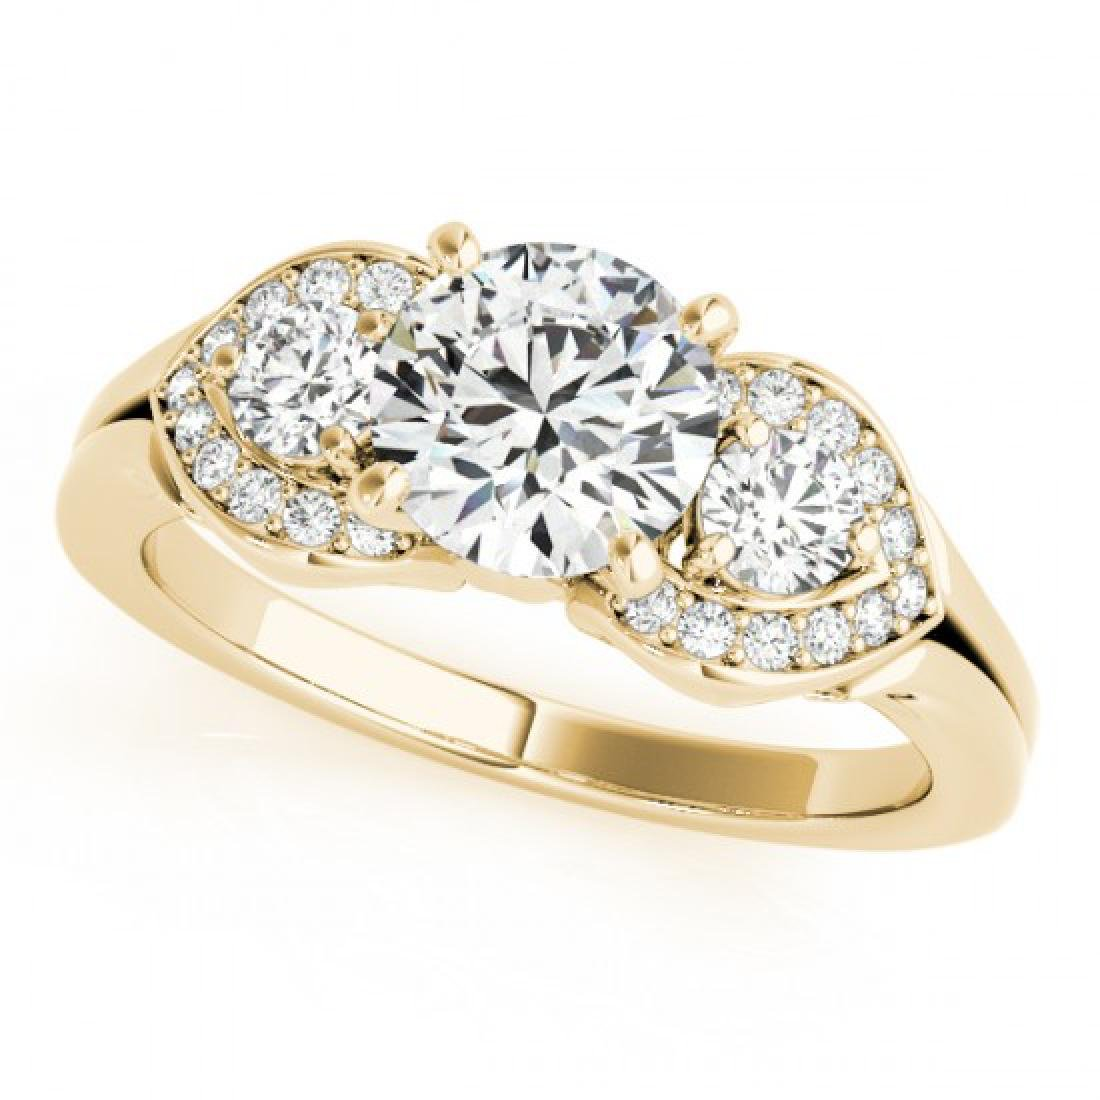 1.45 CTW Certified VS/SI Diamond 3 Stone Ring 14K